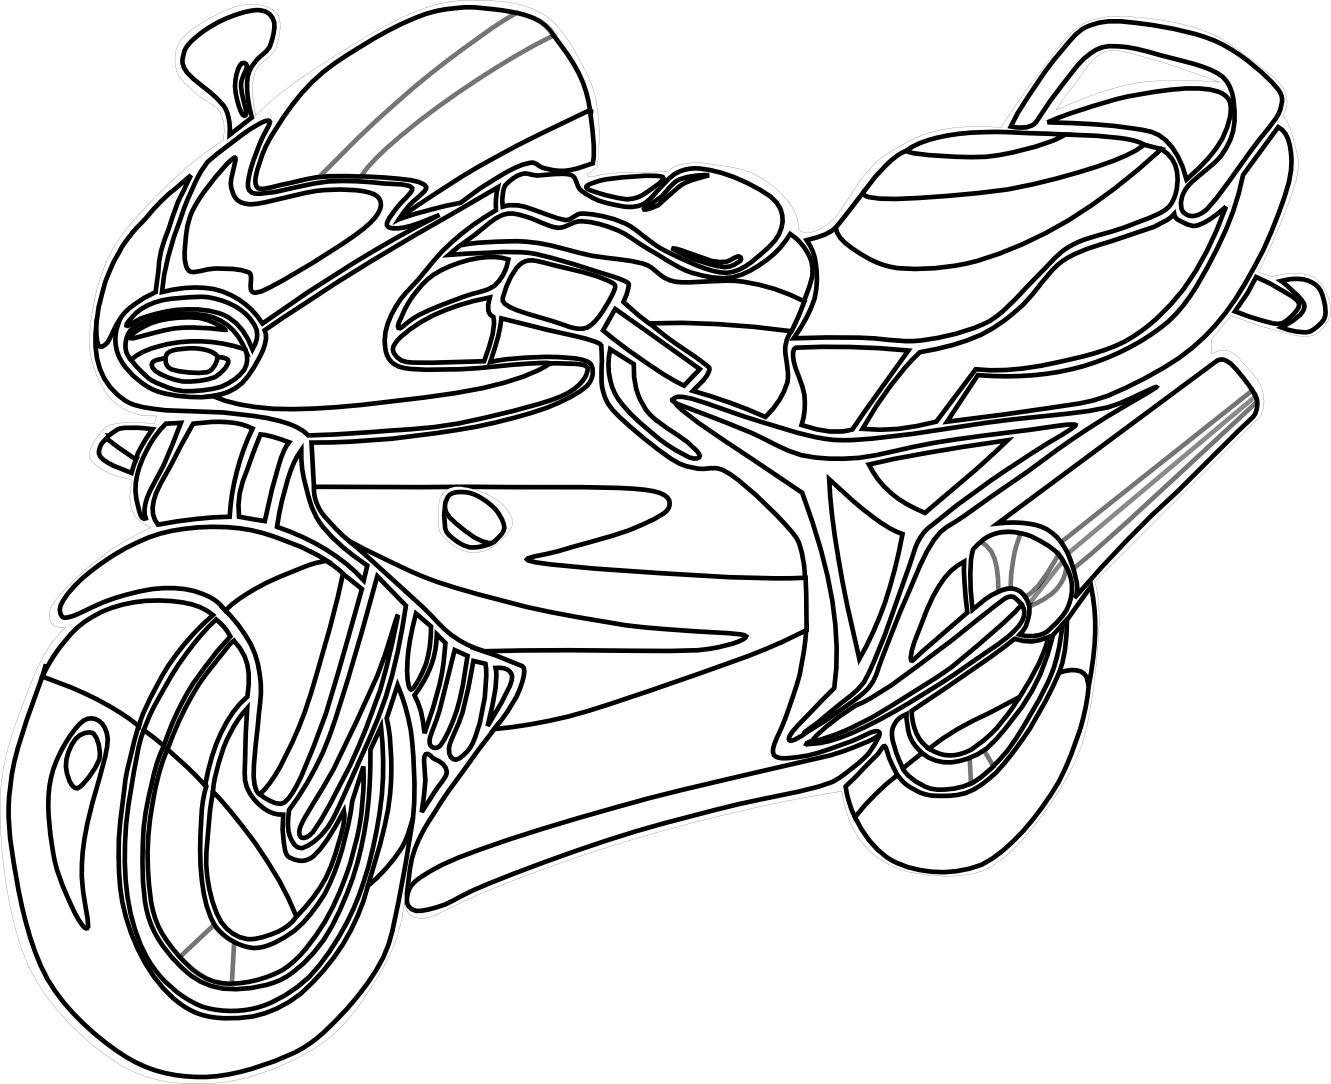 Car engine clipart black and white clip art royalty free download Motorcycle Clipart Black And White | Clipart Panda - Free Clipart Images clip art royalty free download